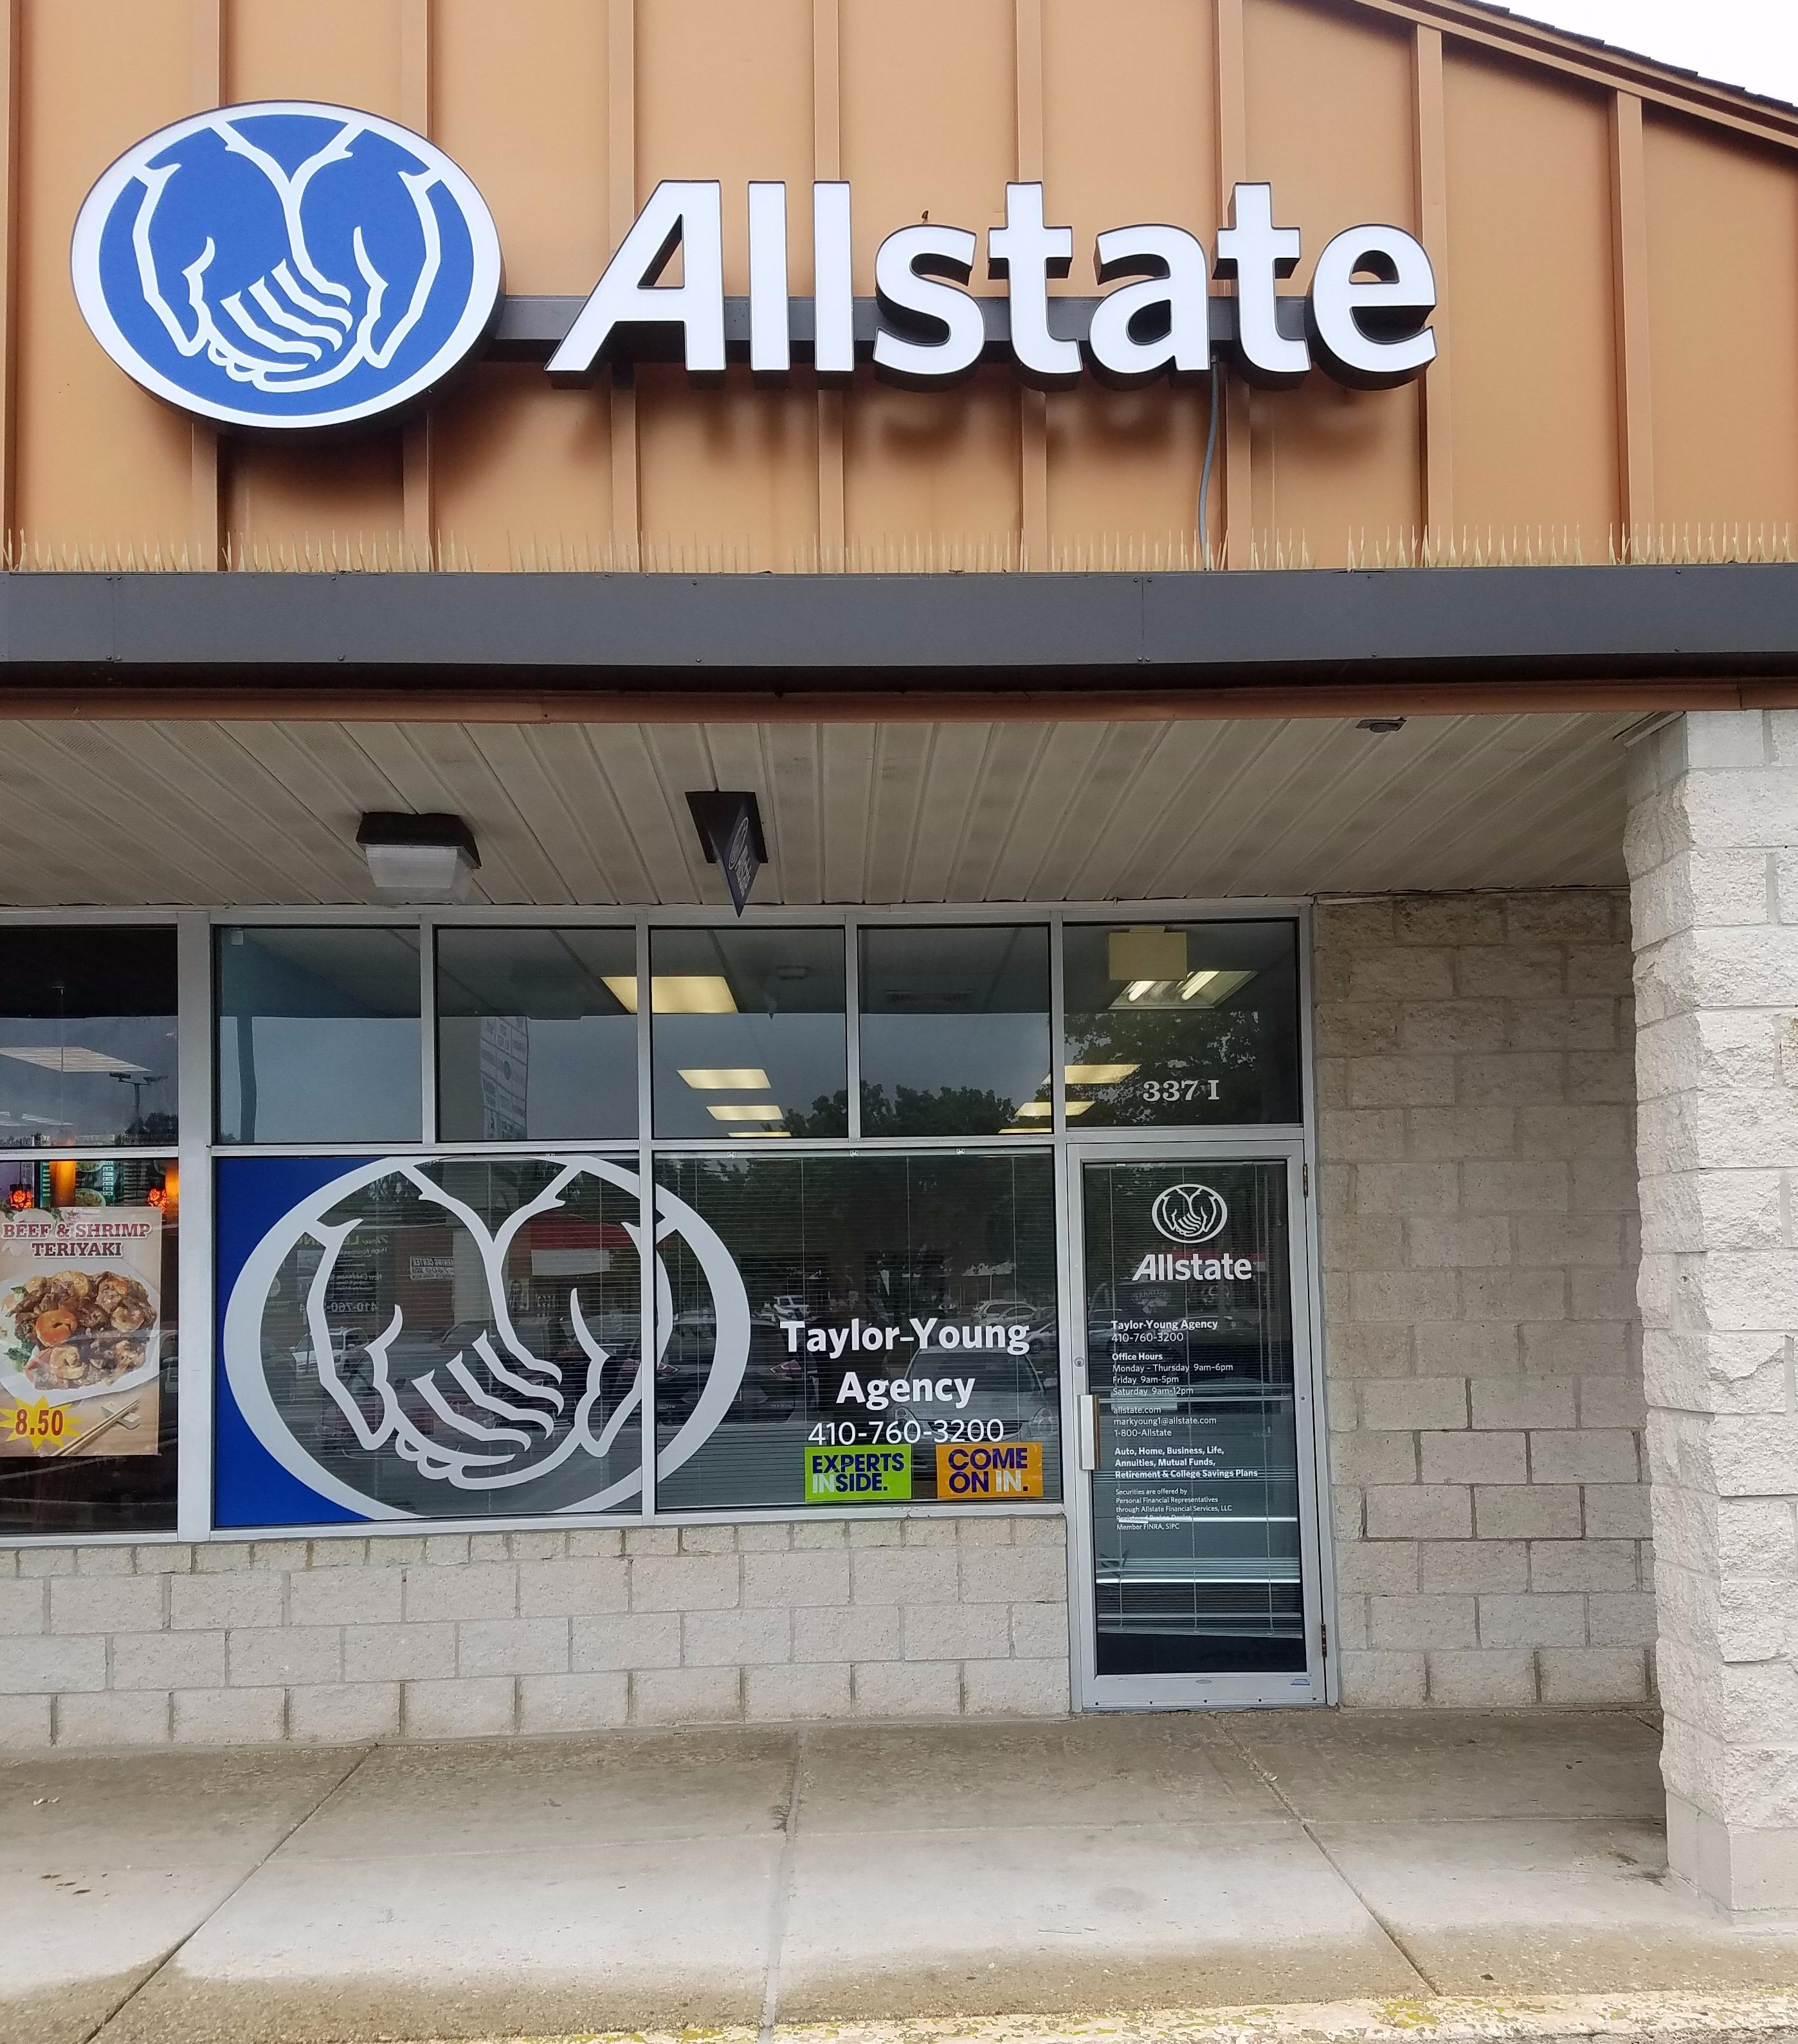 Allstate Insurance Agent: Mark Young image 1